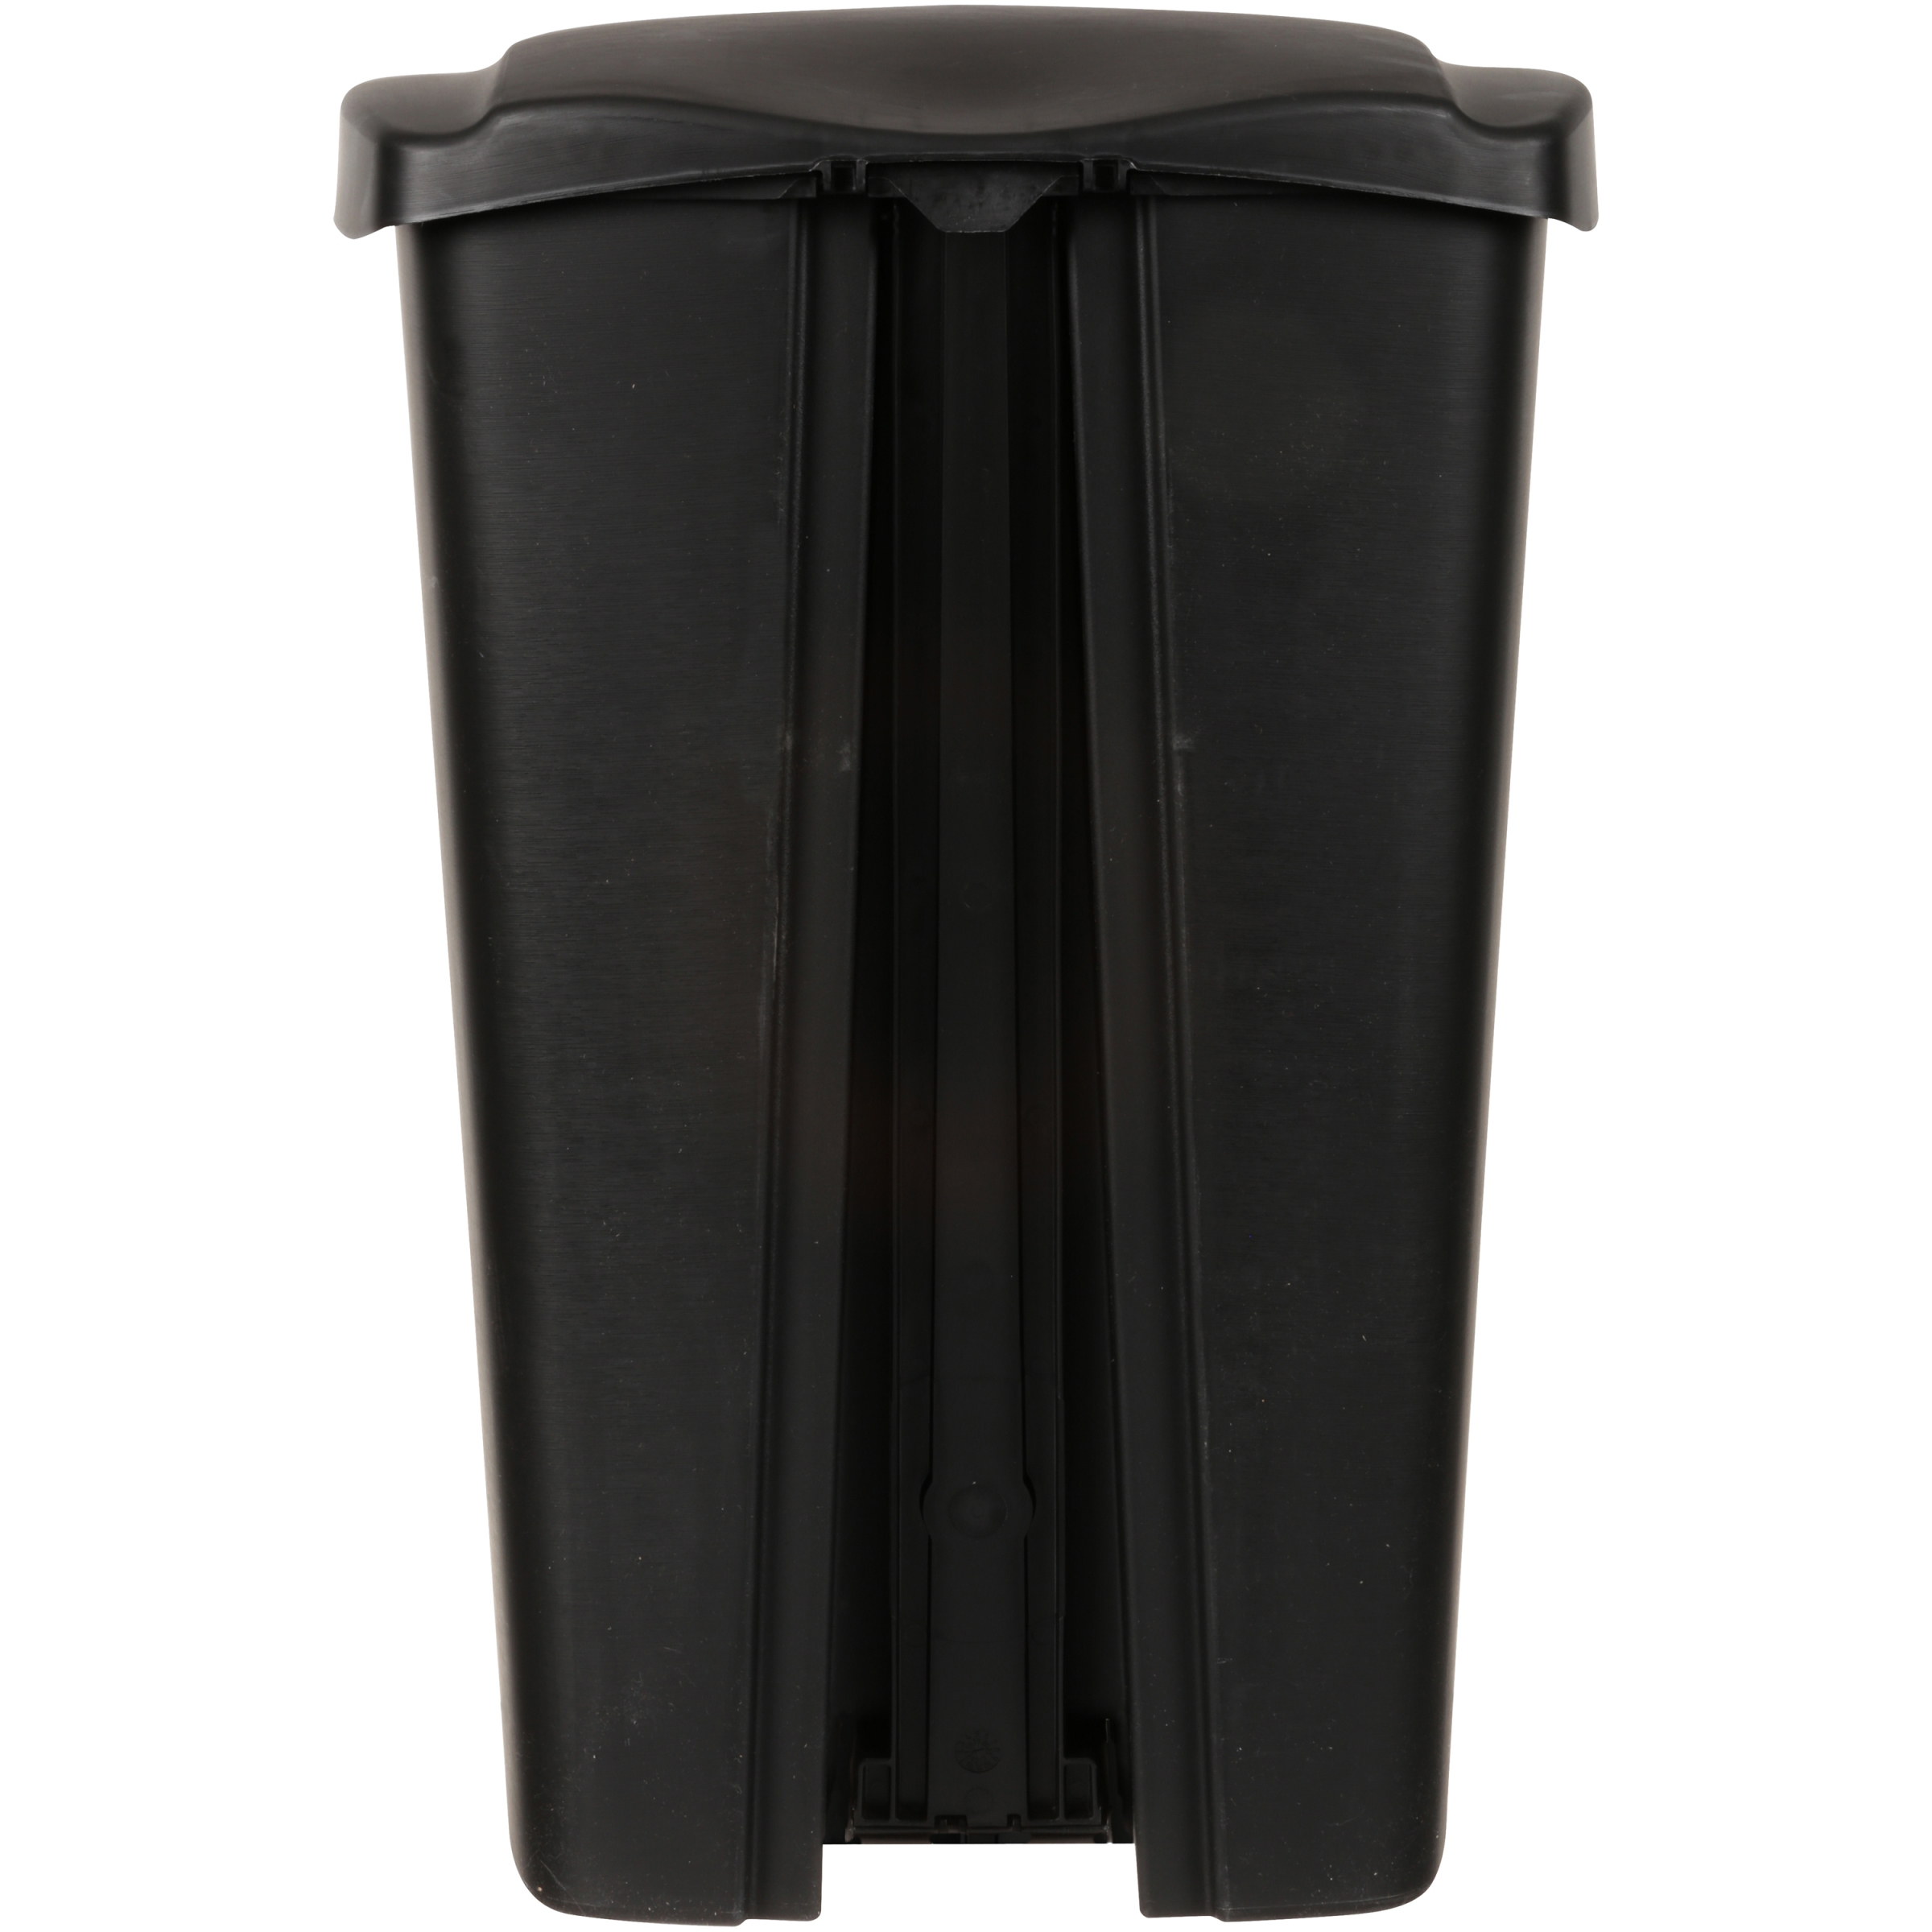 Simply Perfect Stainless Steel Trash Can Trash Cans Home